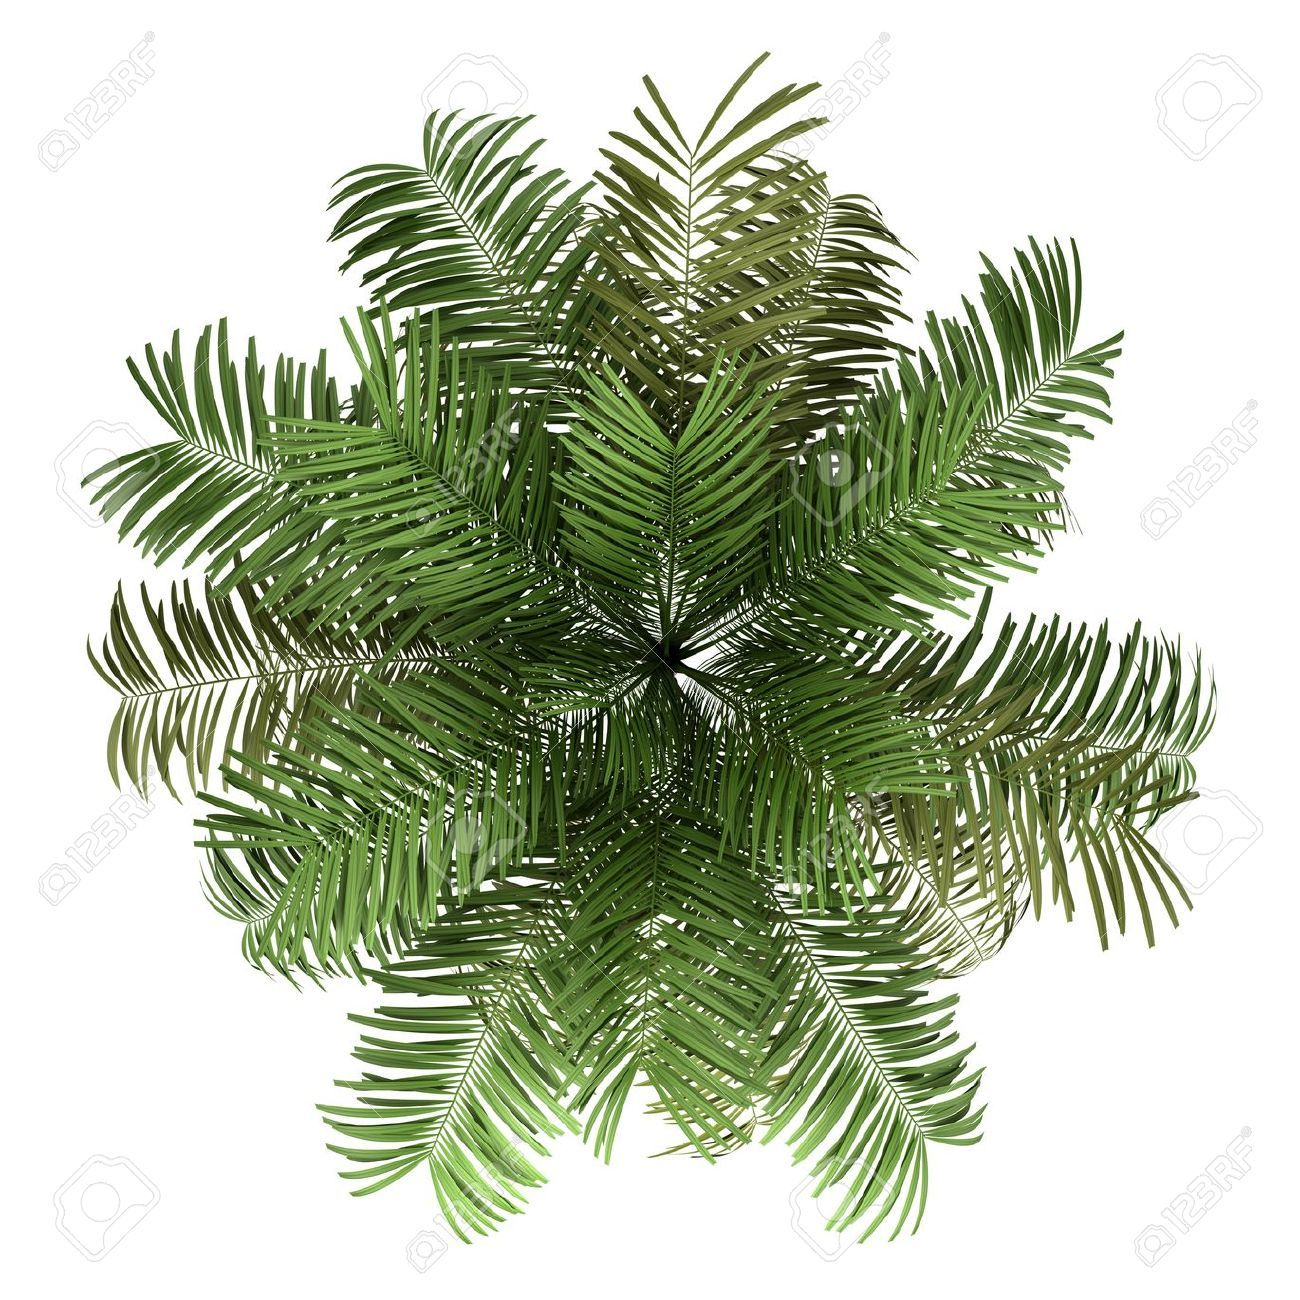 Top view plants 02 2d plant entourage for architecture - Washingtonia Png Buscar Con Google Architectural Treesphotoshop Brushespalm Treestree